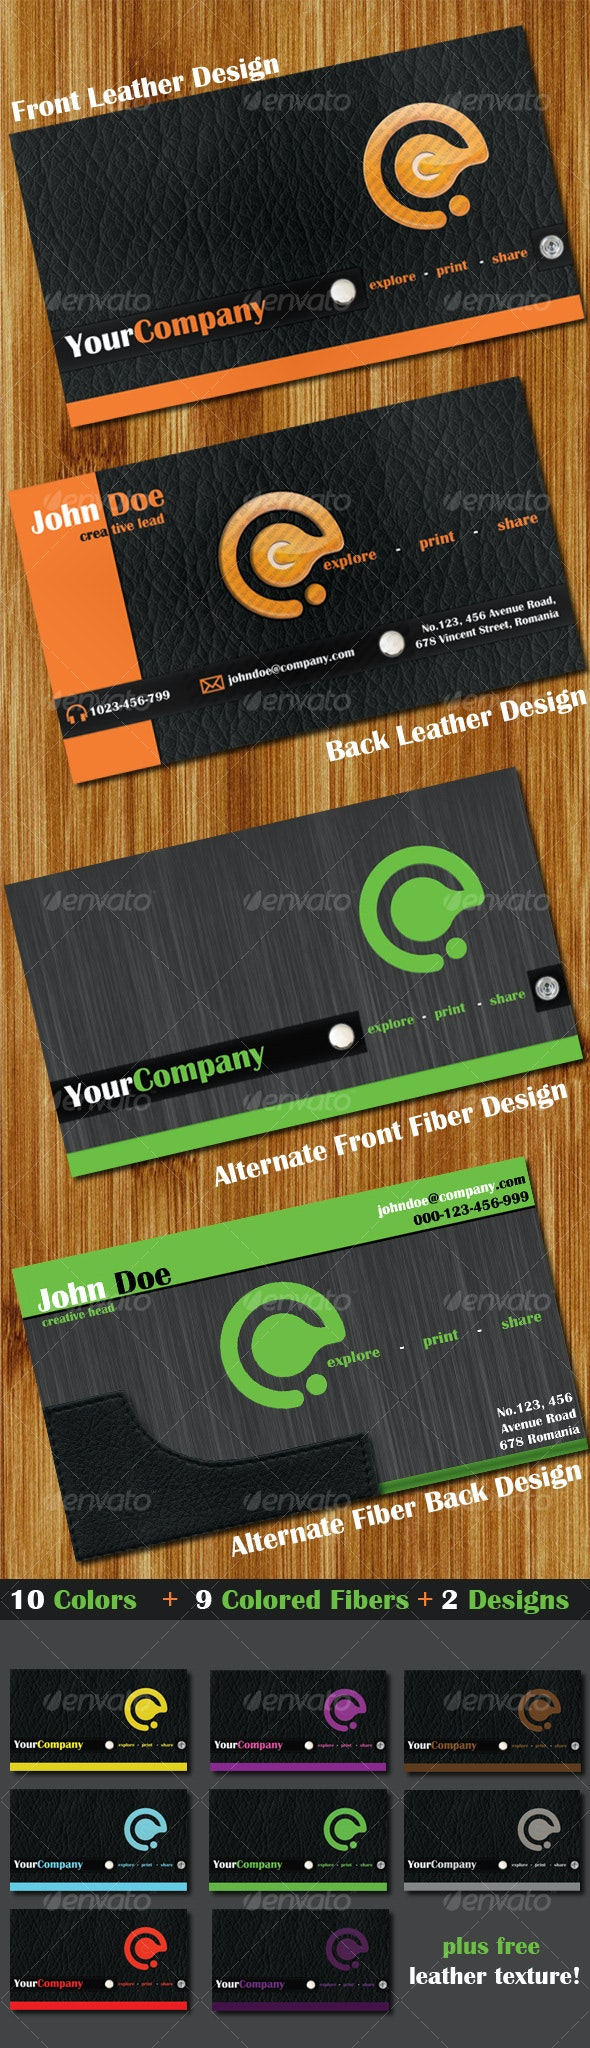 10 Colors (Leather + Fiber) 2 Business Cards - Real Objects Business Cards